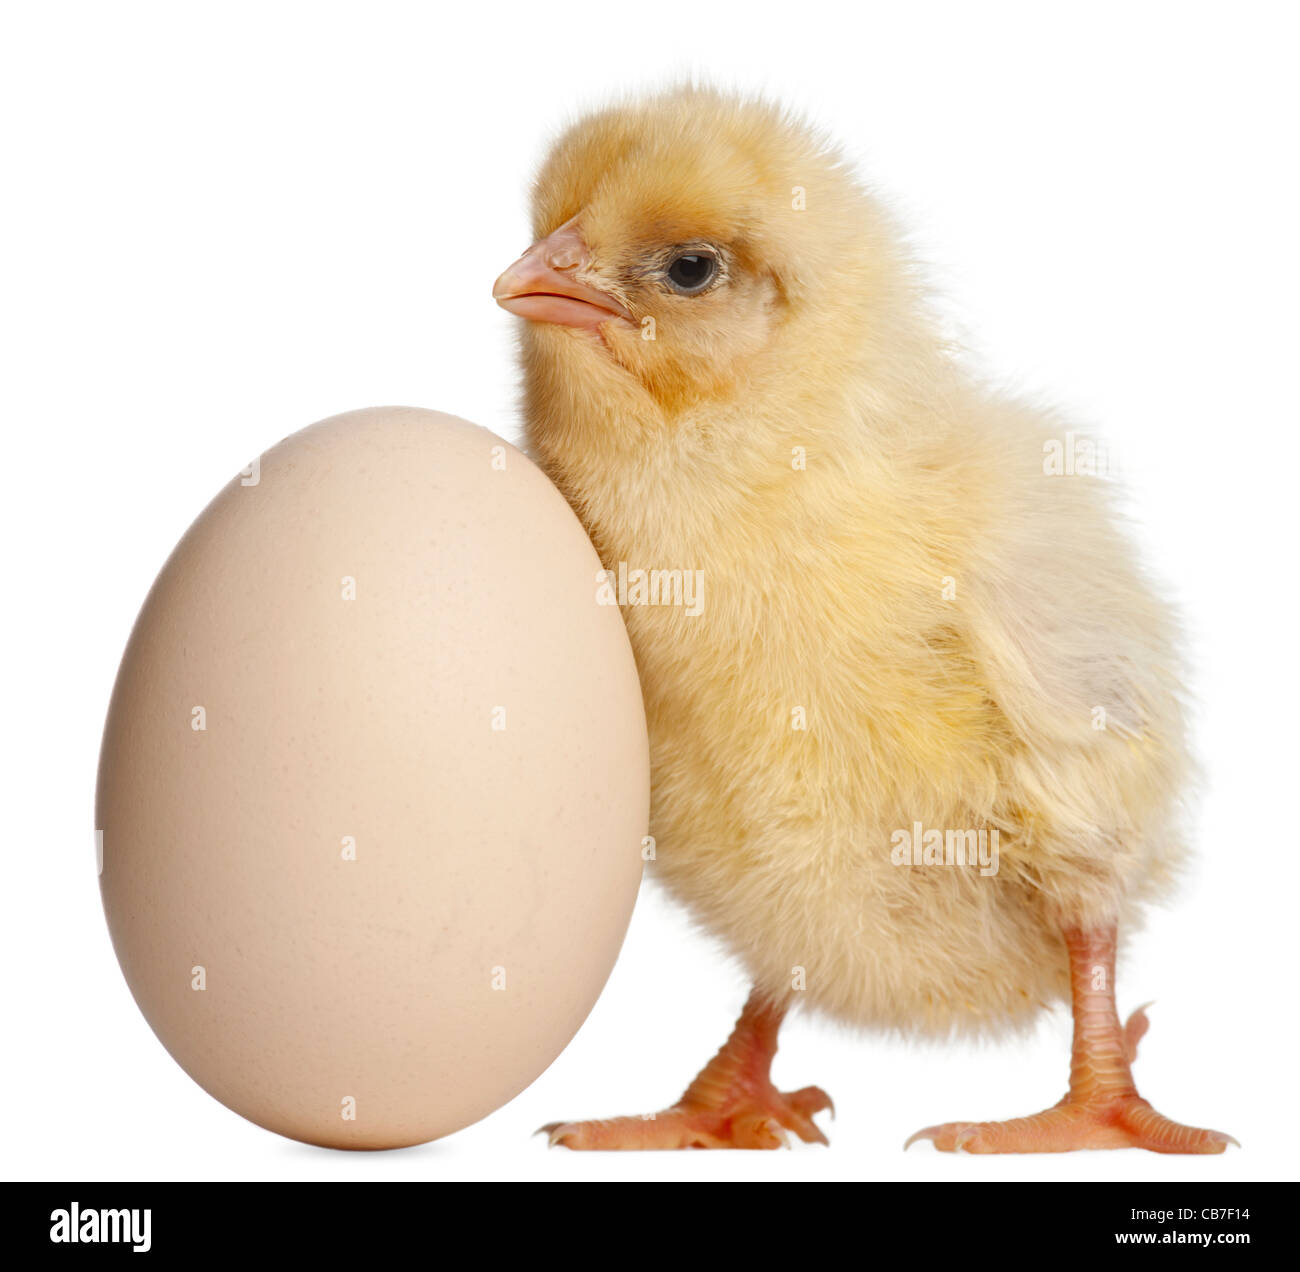 Chick with egg, 2 days old, in front of white background - Stock Image